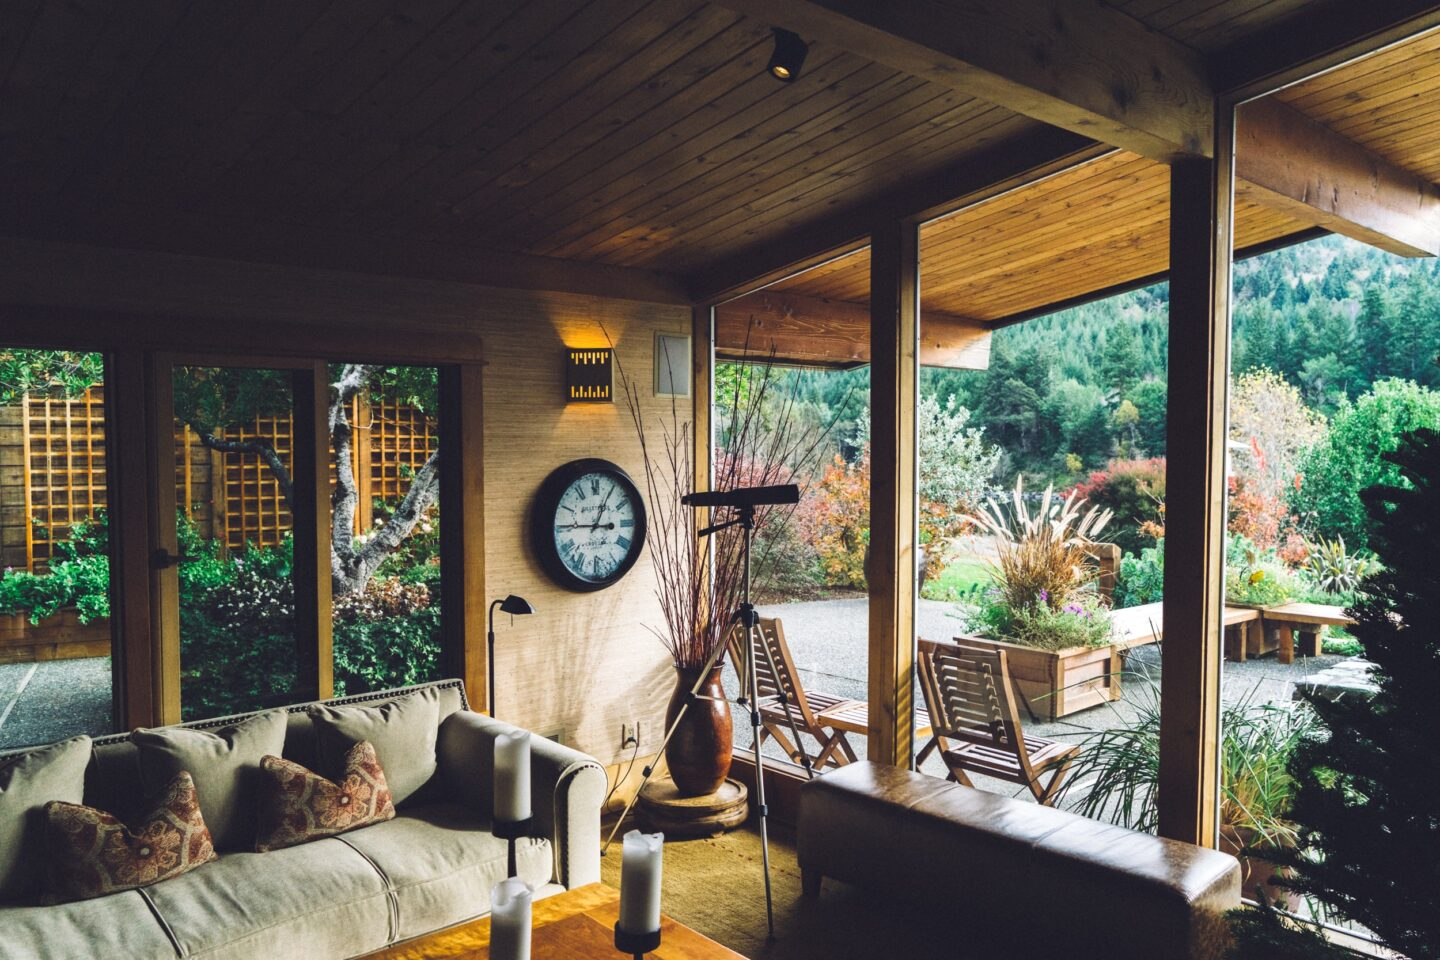 How You Can Turn Your Home Into A More Positive Environment For Everyone